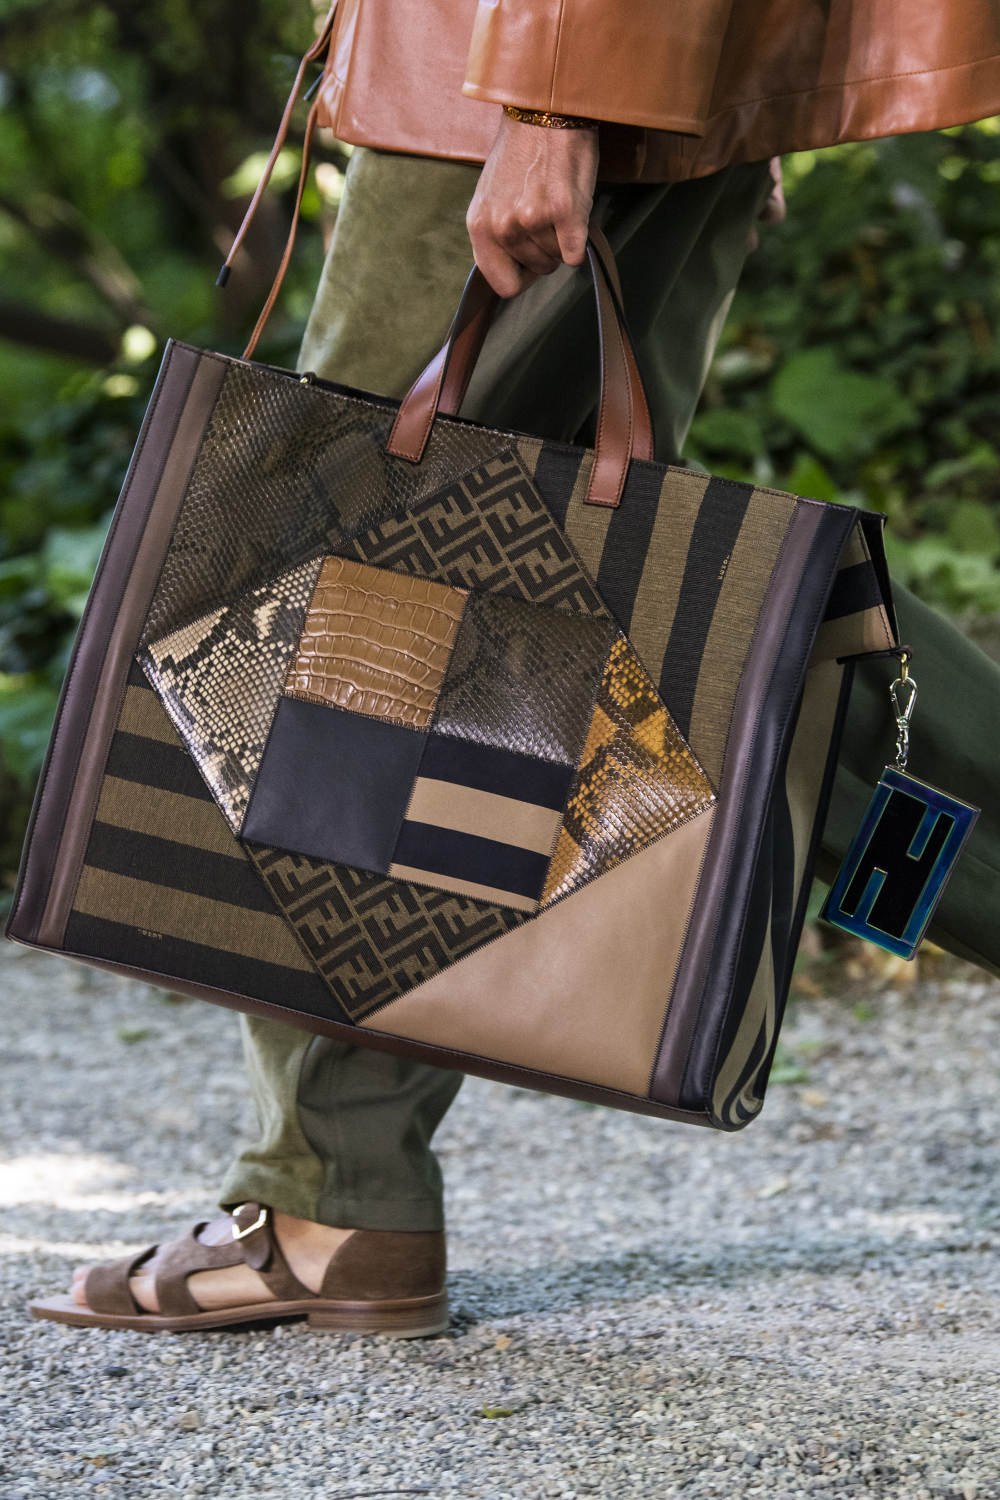 Fendi Spring 2020 Men S Fashion Show Details The Impression Bags Fashion Bags Leather Bags Handmade